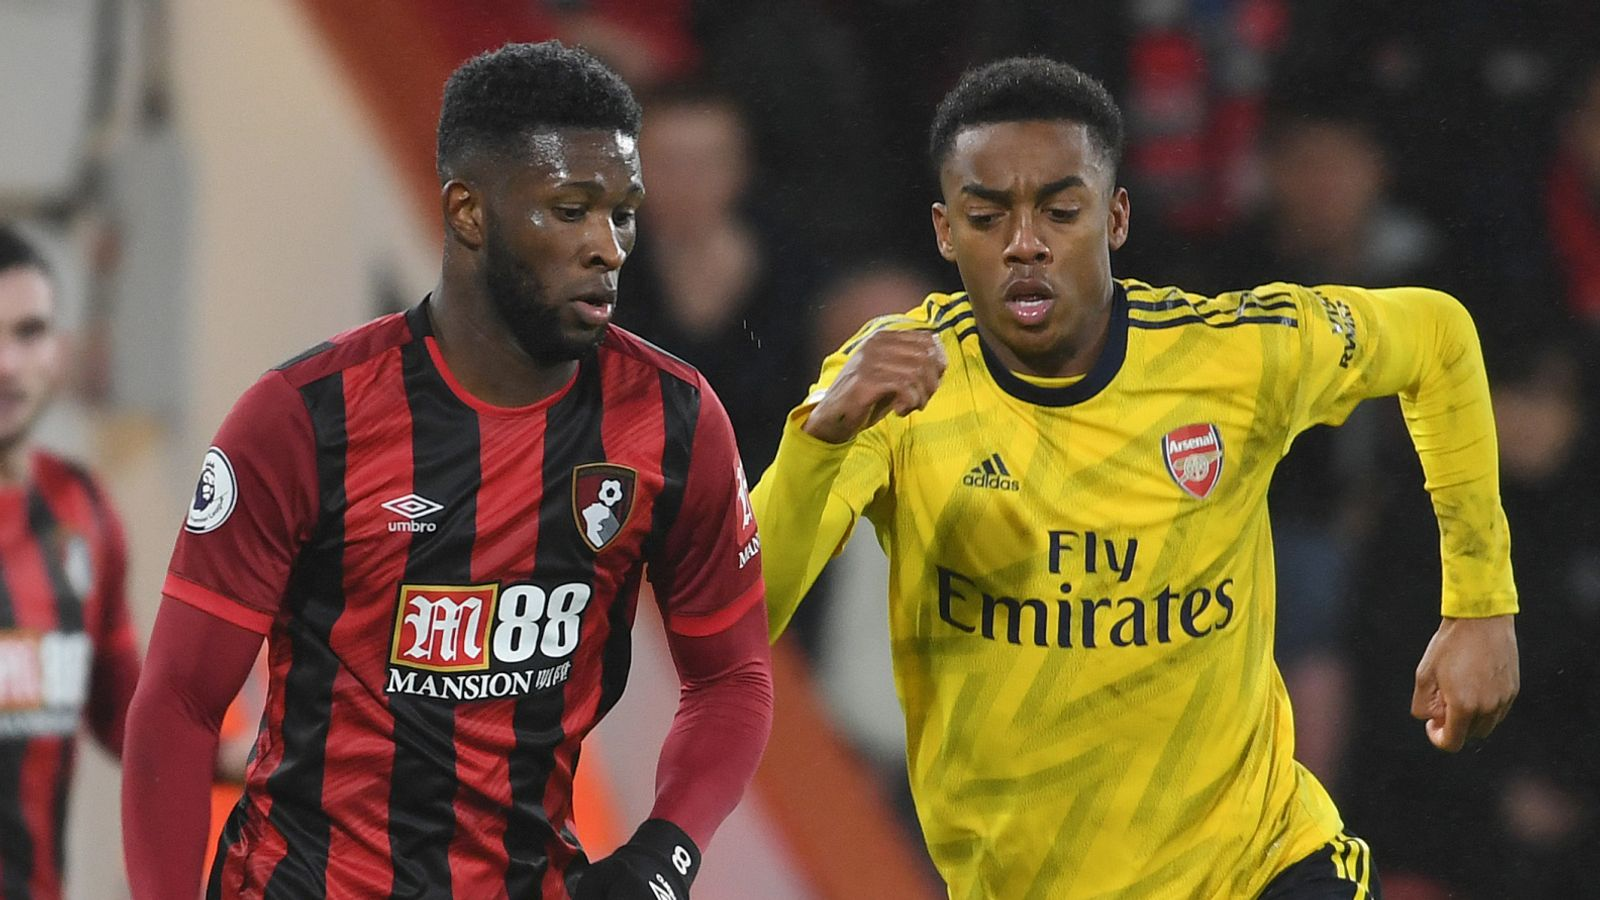 Bournemouth vs Arsenal preview